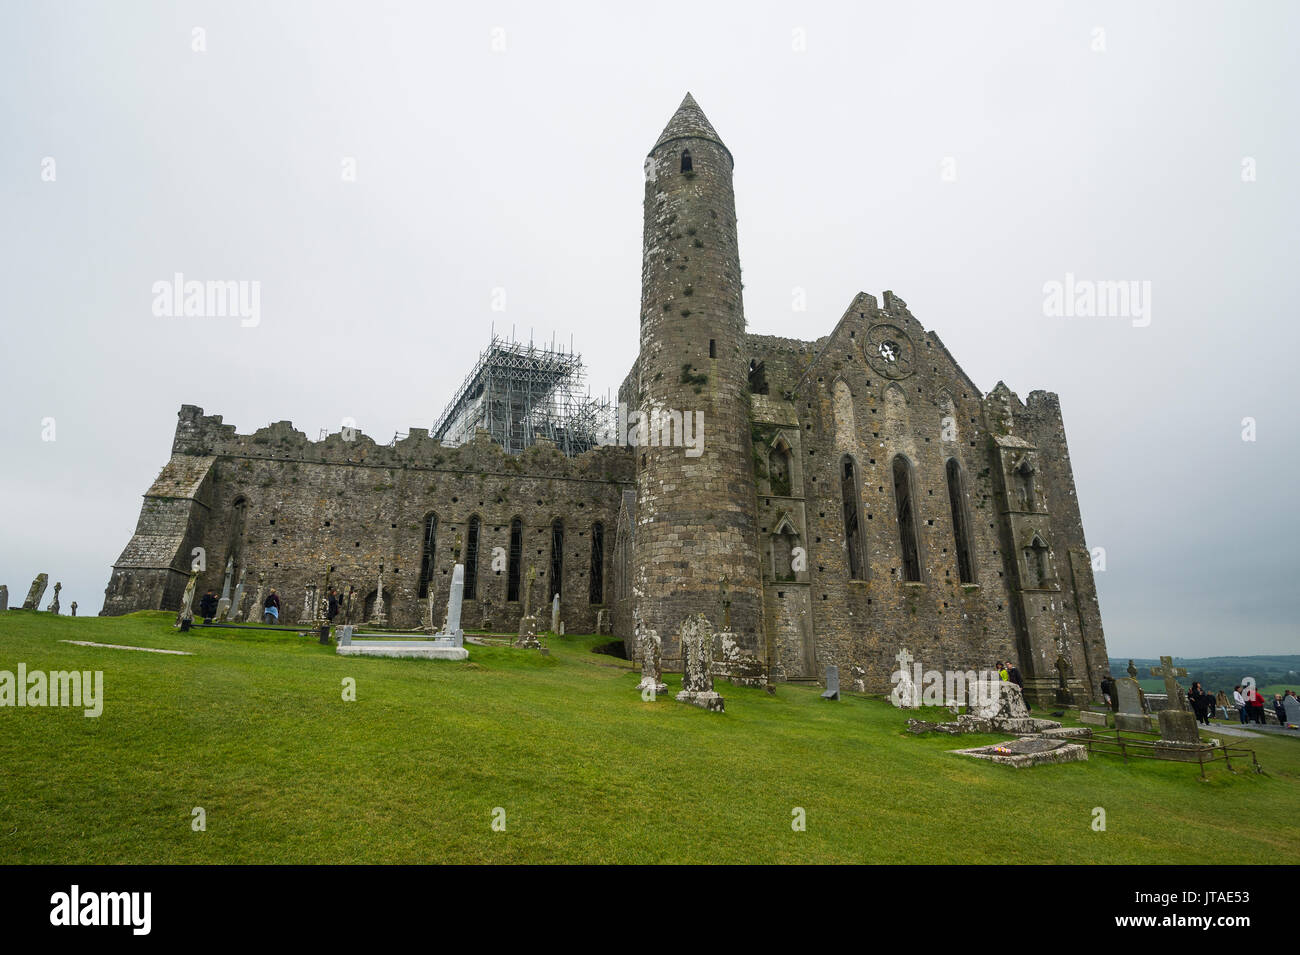 Cathedral on the Rock of Cashel, Cashel, County Tipperary, Munster, Republic of Ireland, Europe Stock Photo